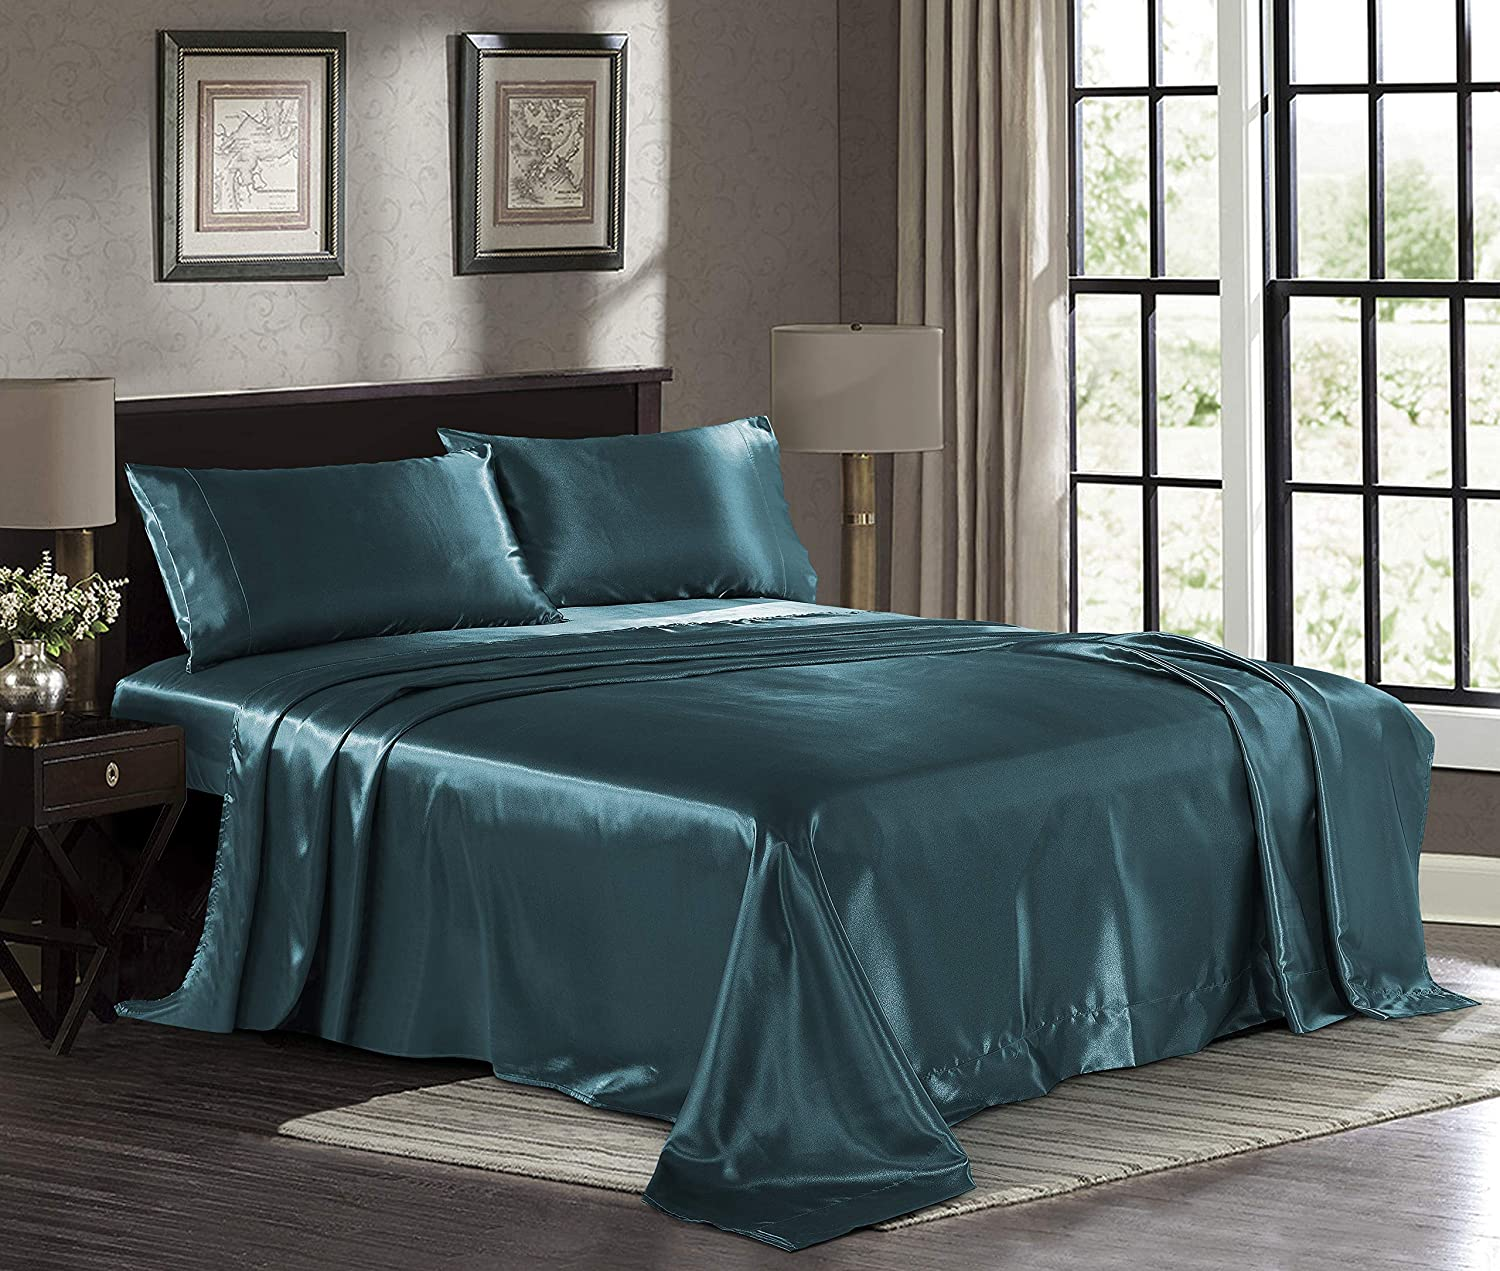 Satin Sheets California King [4-Piece, Teal] Luxury Silky Bed Sheets - Extra Soft 1800 Microfiber Sheet Set, Wrinkle, Fade, Stain Resistant - Deep Pocket Fitted Sheet, Flat Sheet, Pillow Cases